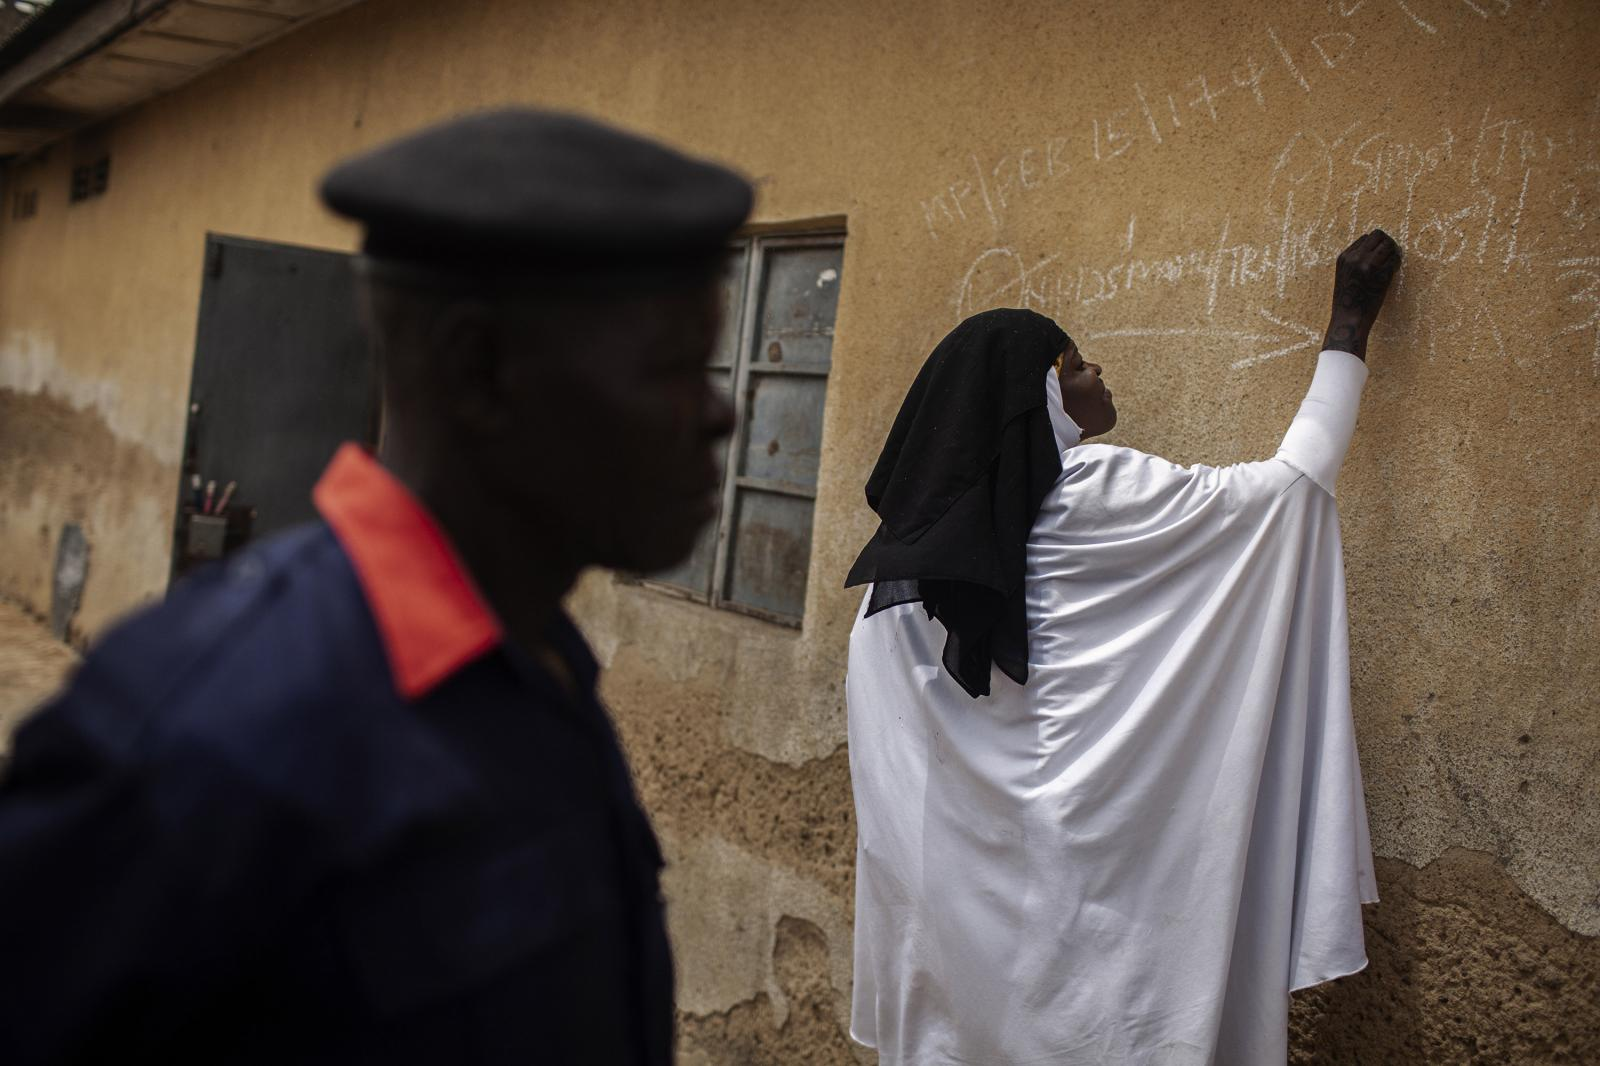 Polio health workers marks the gates of the houses to identify the ones remaining as several kids are not at home during the campaign. As long as a single child remains infected, children in all countries are at risk of contracting polio. Kano, Nigeria 2014. Diego Ibarra Sánchez